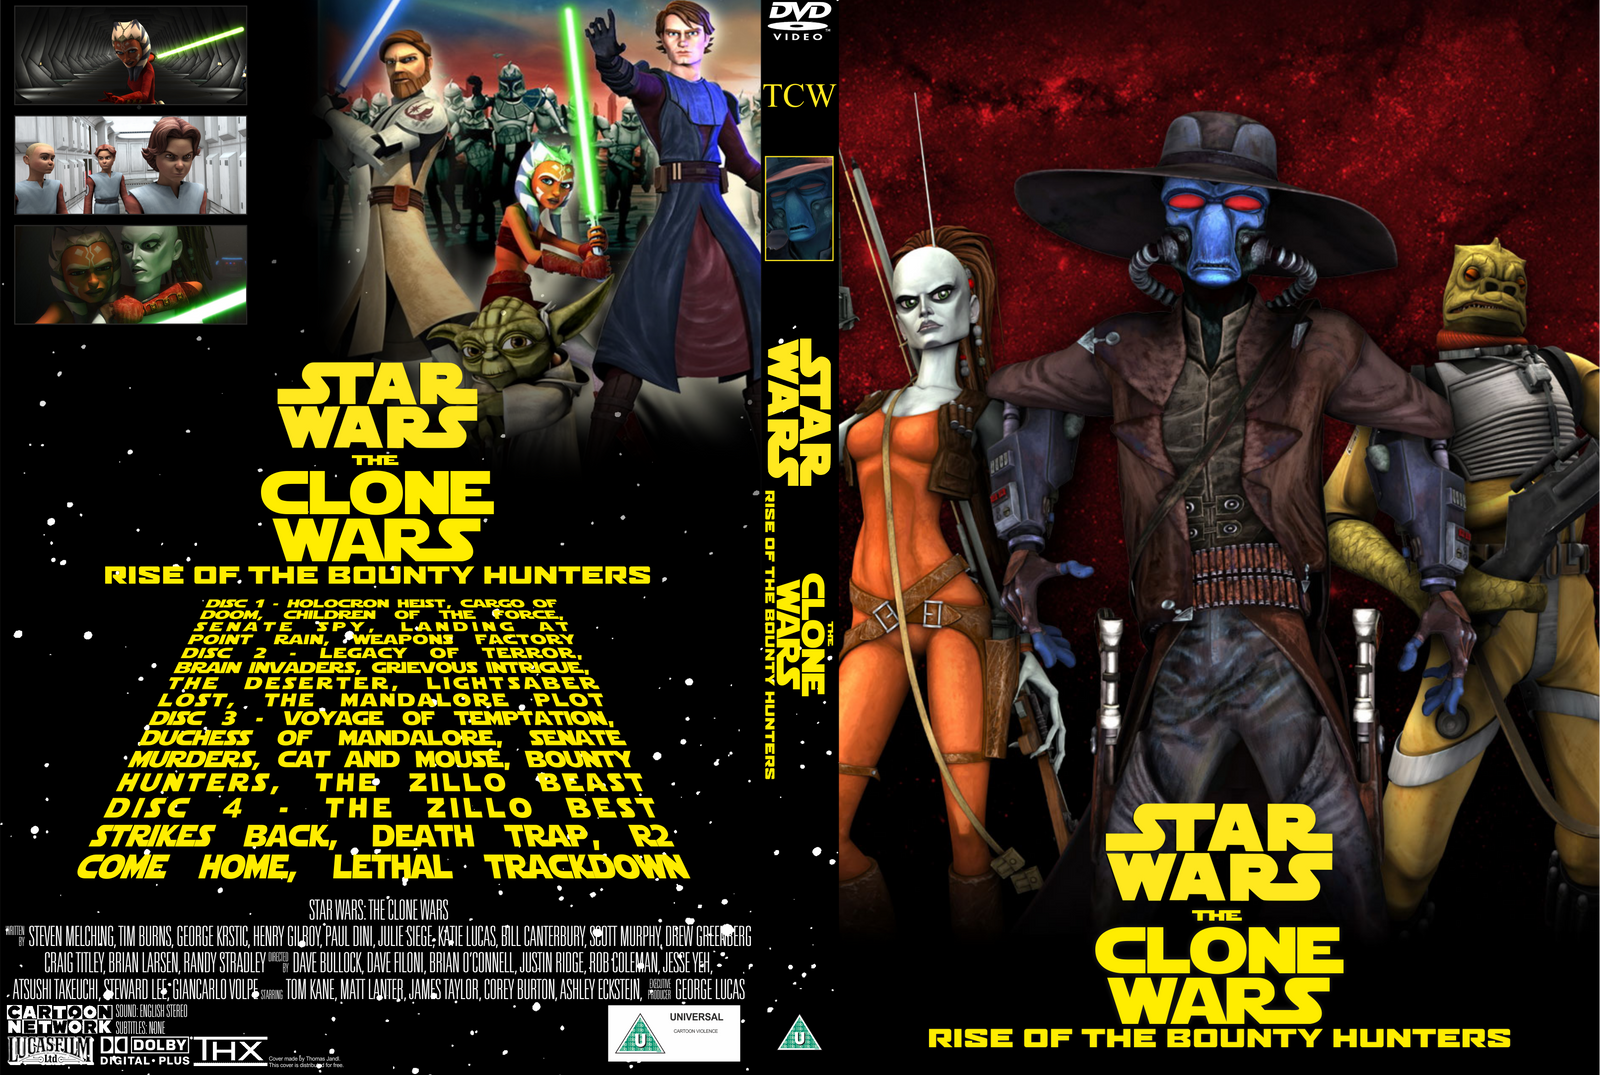 star wars the clone wars rotbh dvd cover by wario64i on deviantart